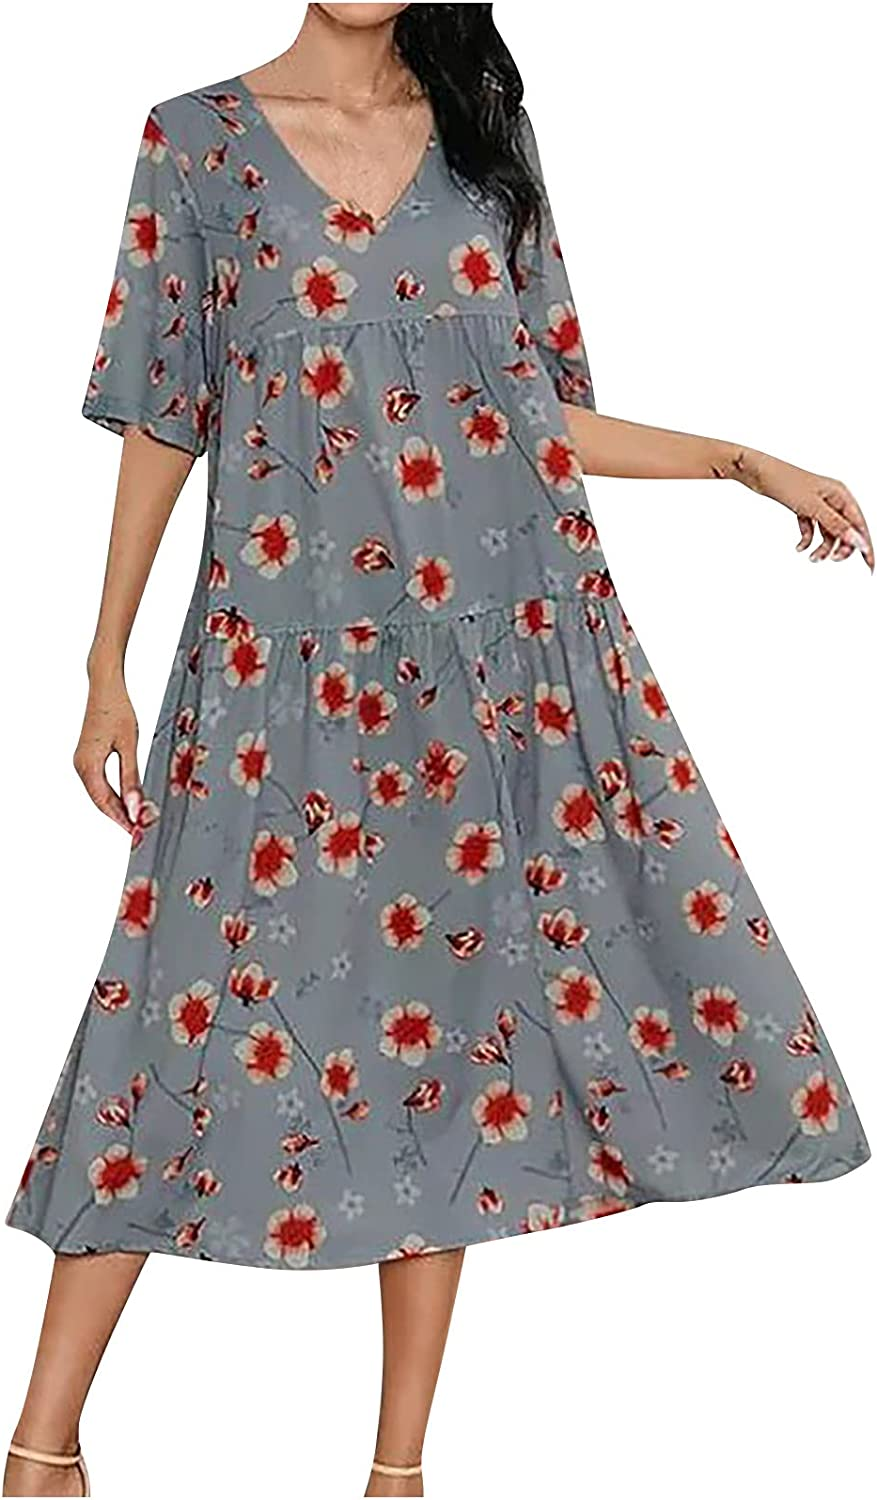 FRSH MNT Casual Dress for Womens Summer Retro Printed A-Line Ski